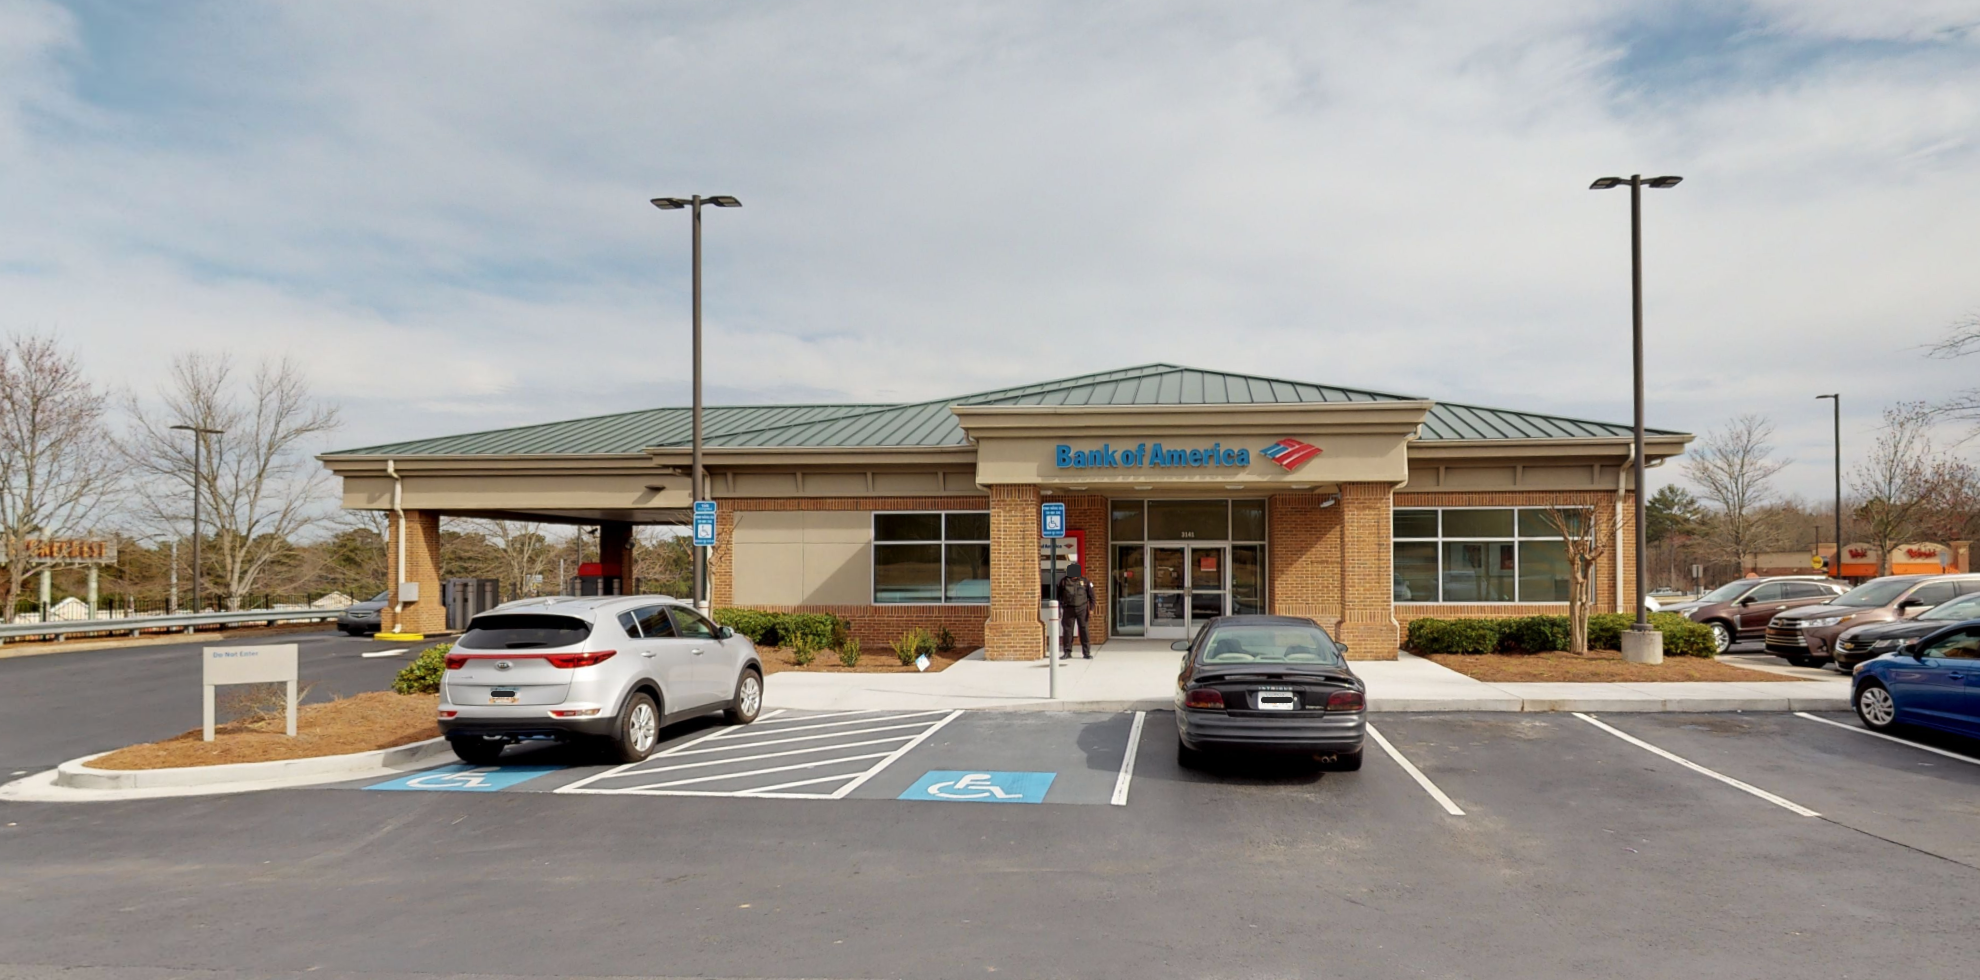 Bank of America financial center with drive-thru ATM | 3141 Turner Hill Rd, Lithonia, GA 30038